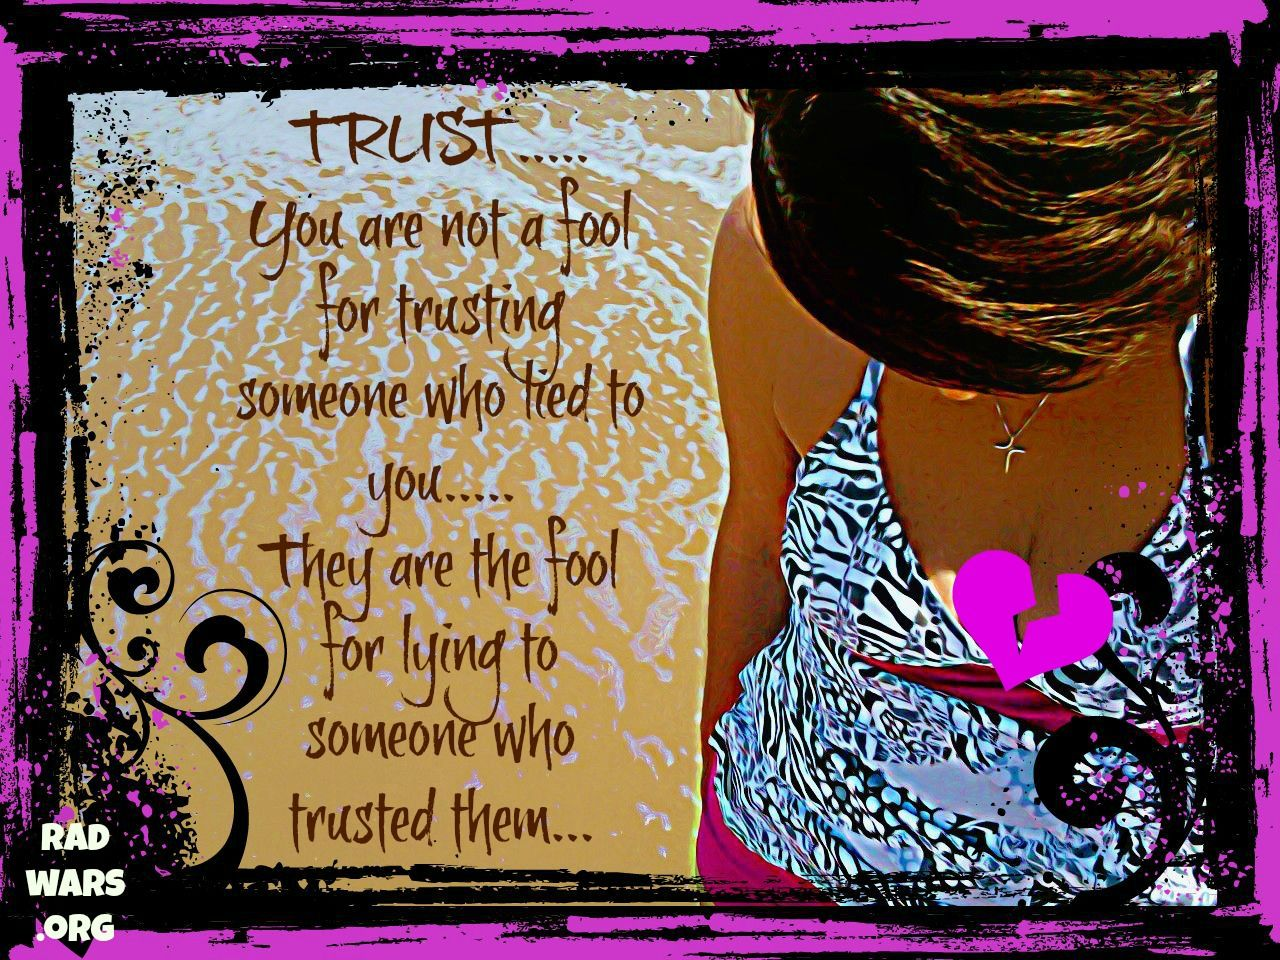 trust relationships betrayal lying quotes sayings  My